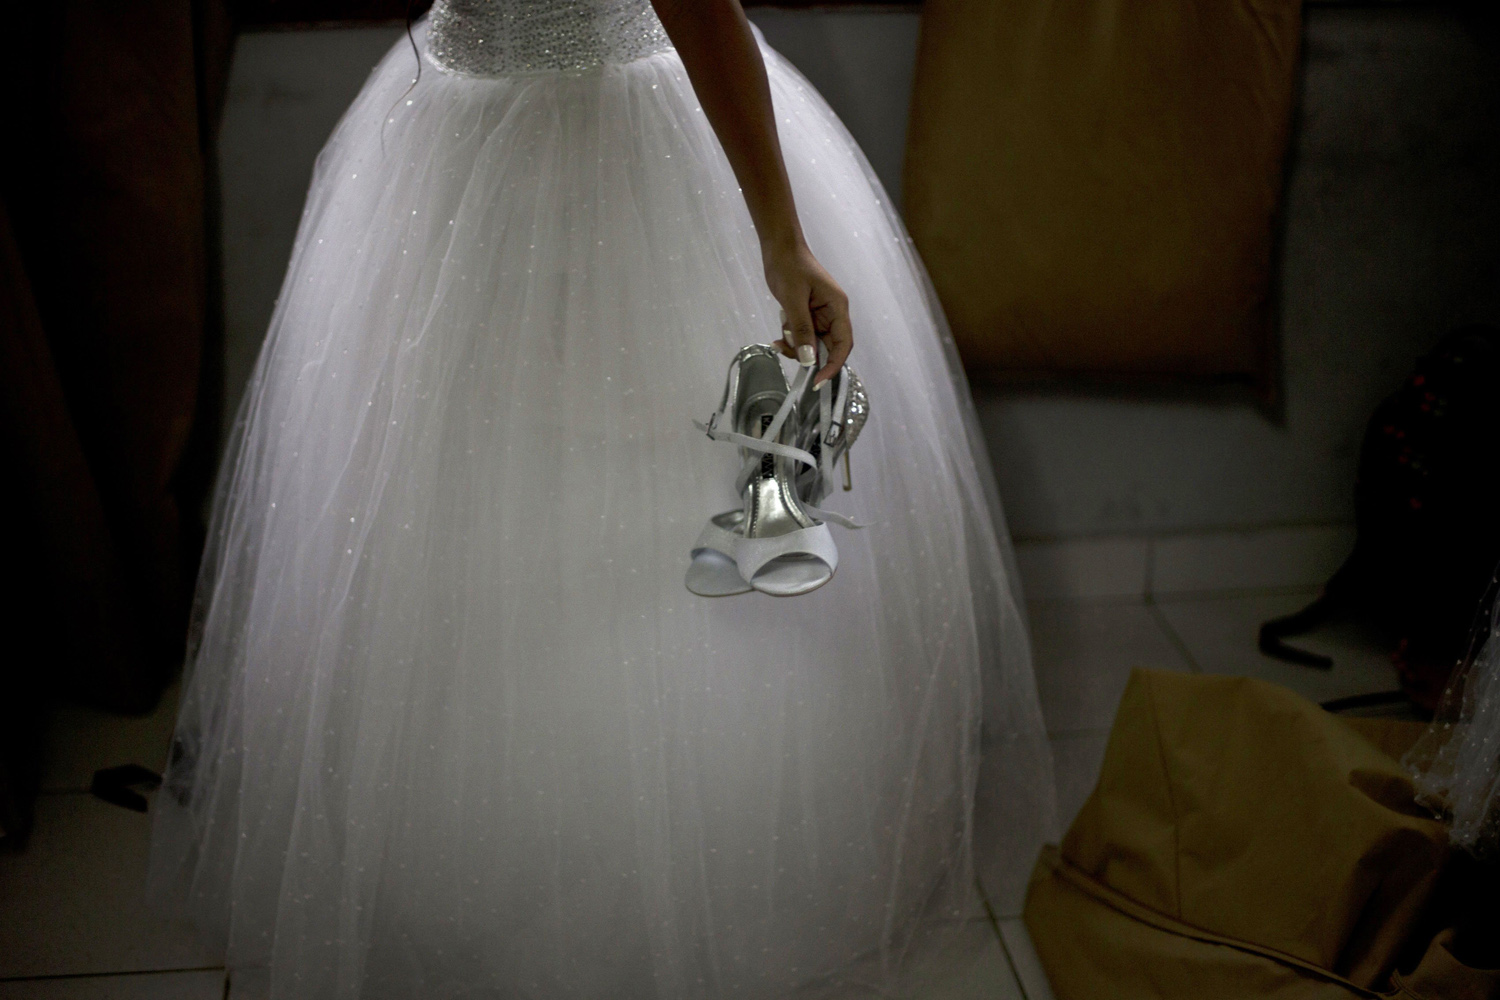 Aug. 29, 2014. A teenage girl from the Santa Marta  favela  slum holds a pair of high heels before the start of a debutante ball organized by the Pacifying Police Unit from her neighborhood in Rio de Janeiro, Brazil.